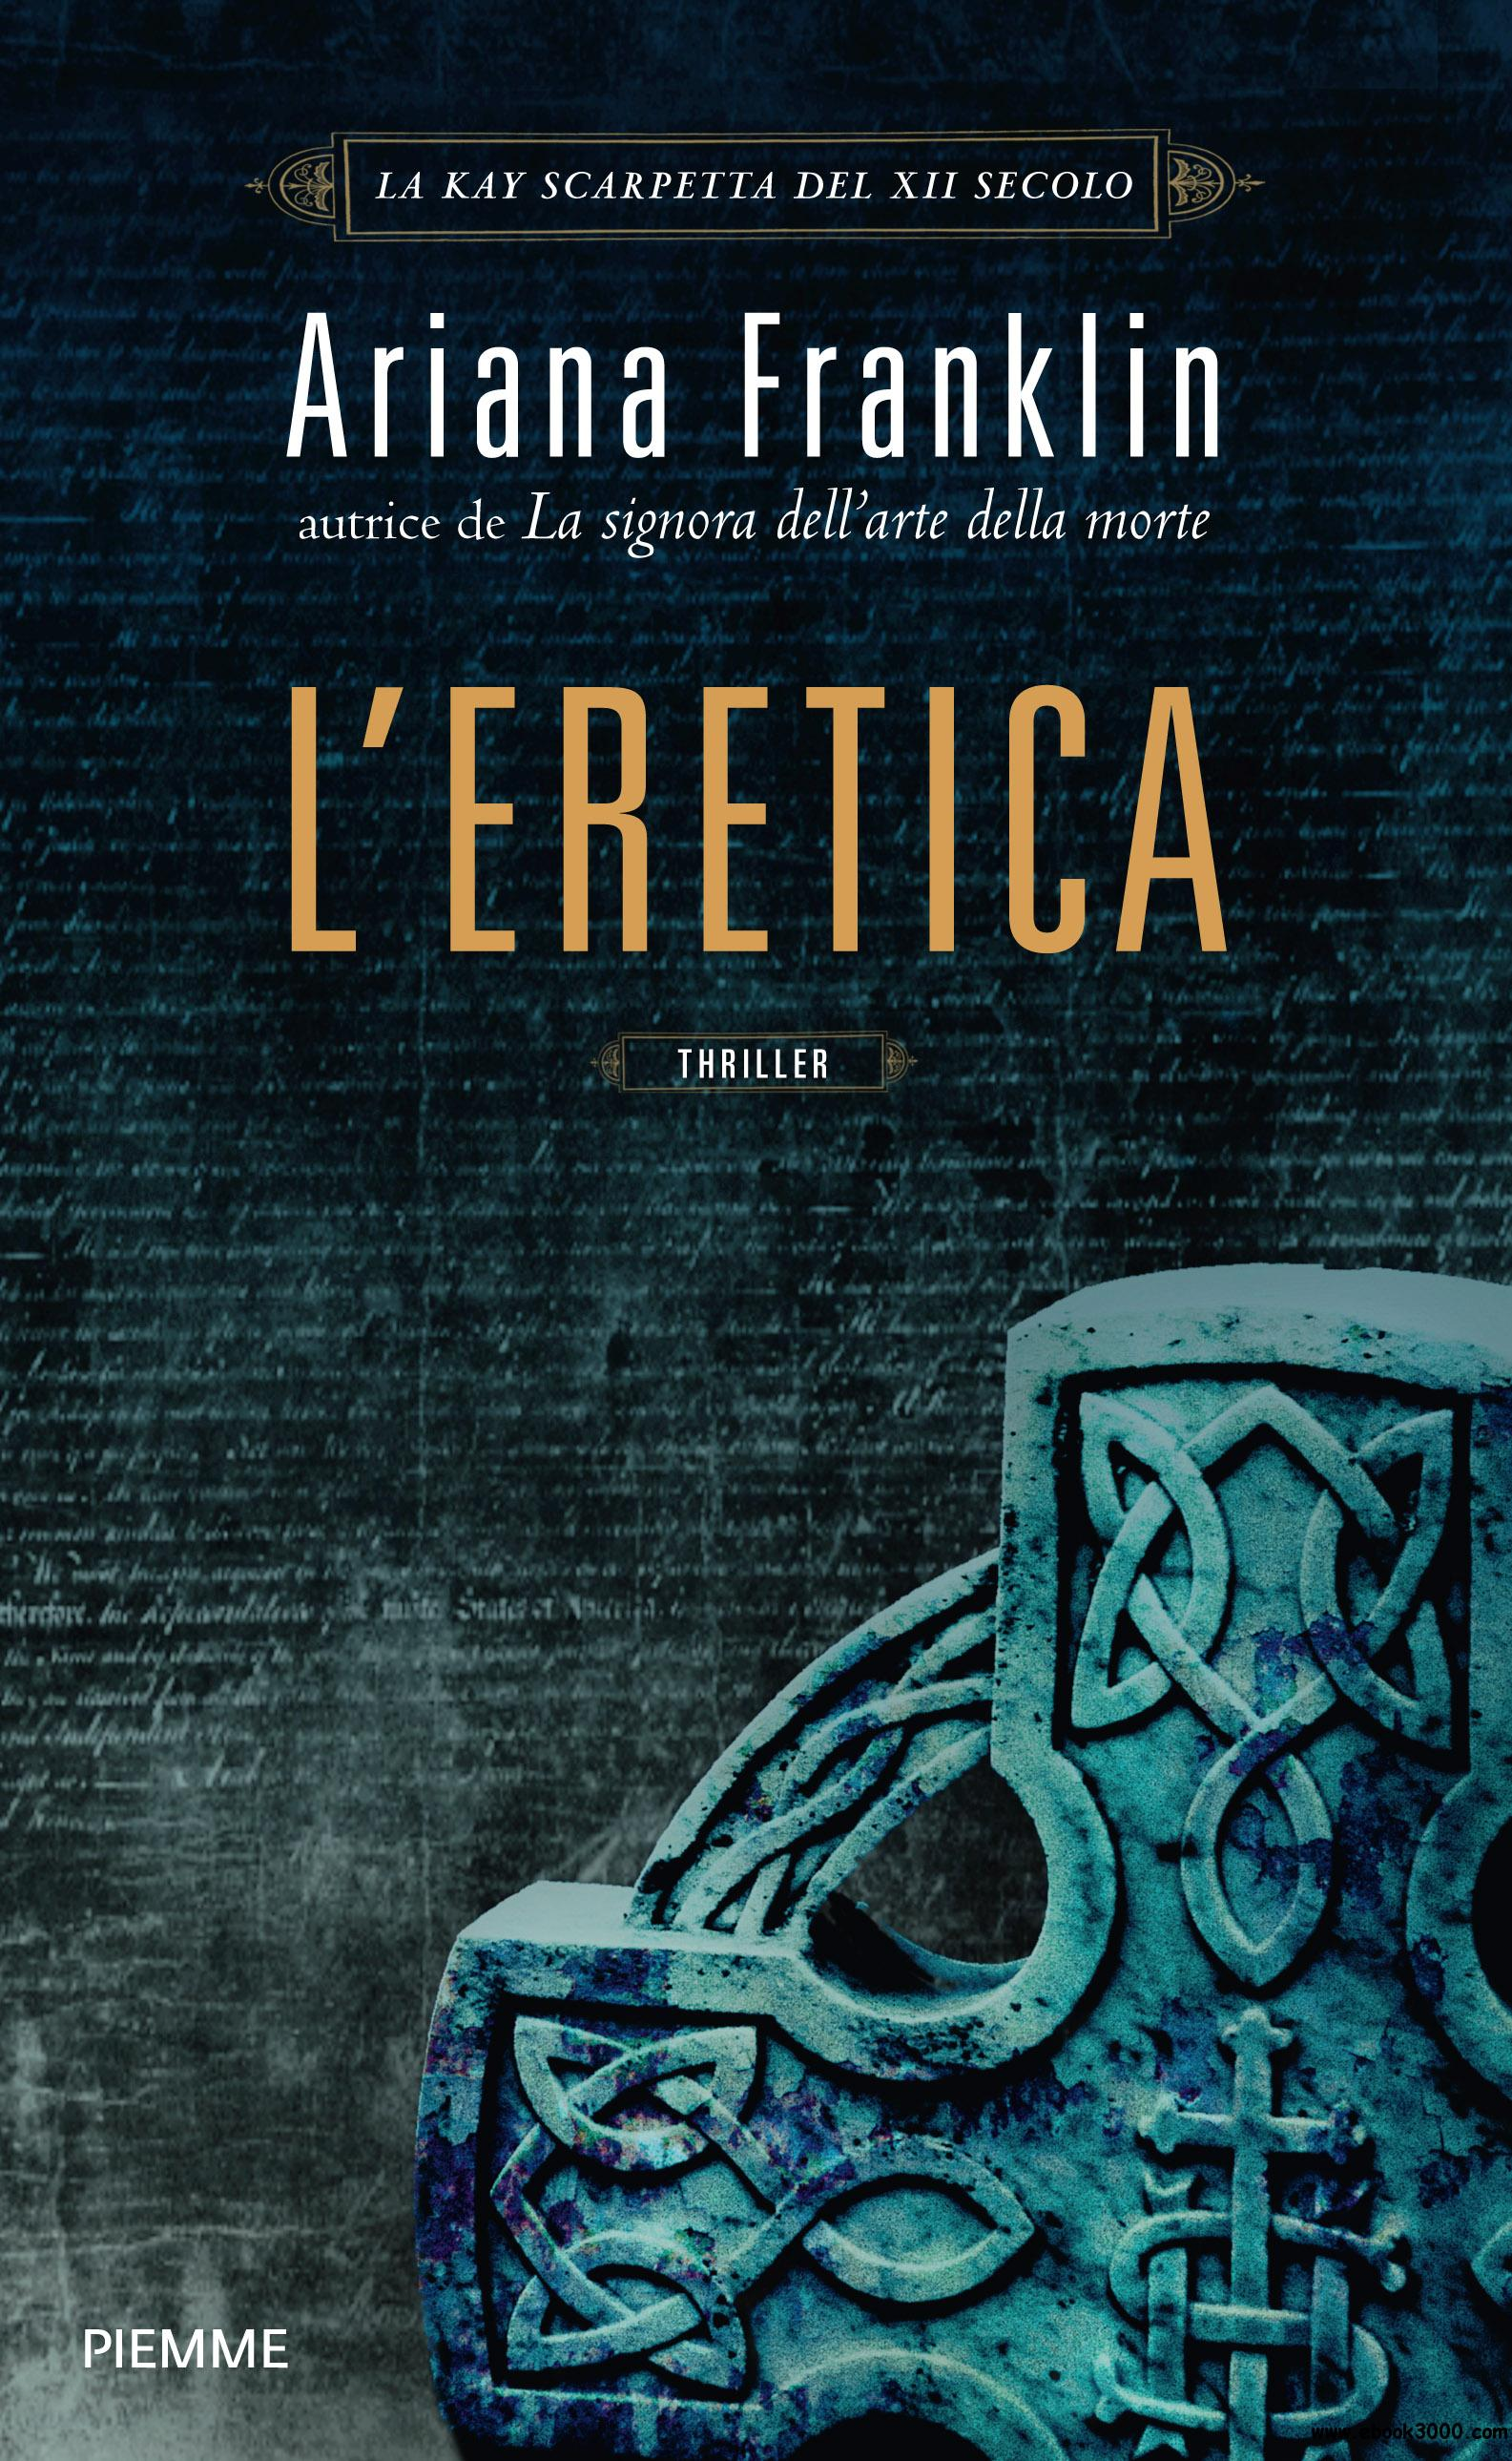 Ariana Franklin - L'eretica free download